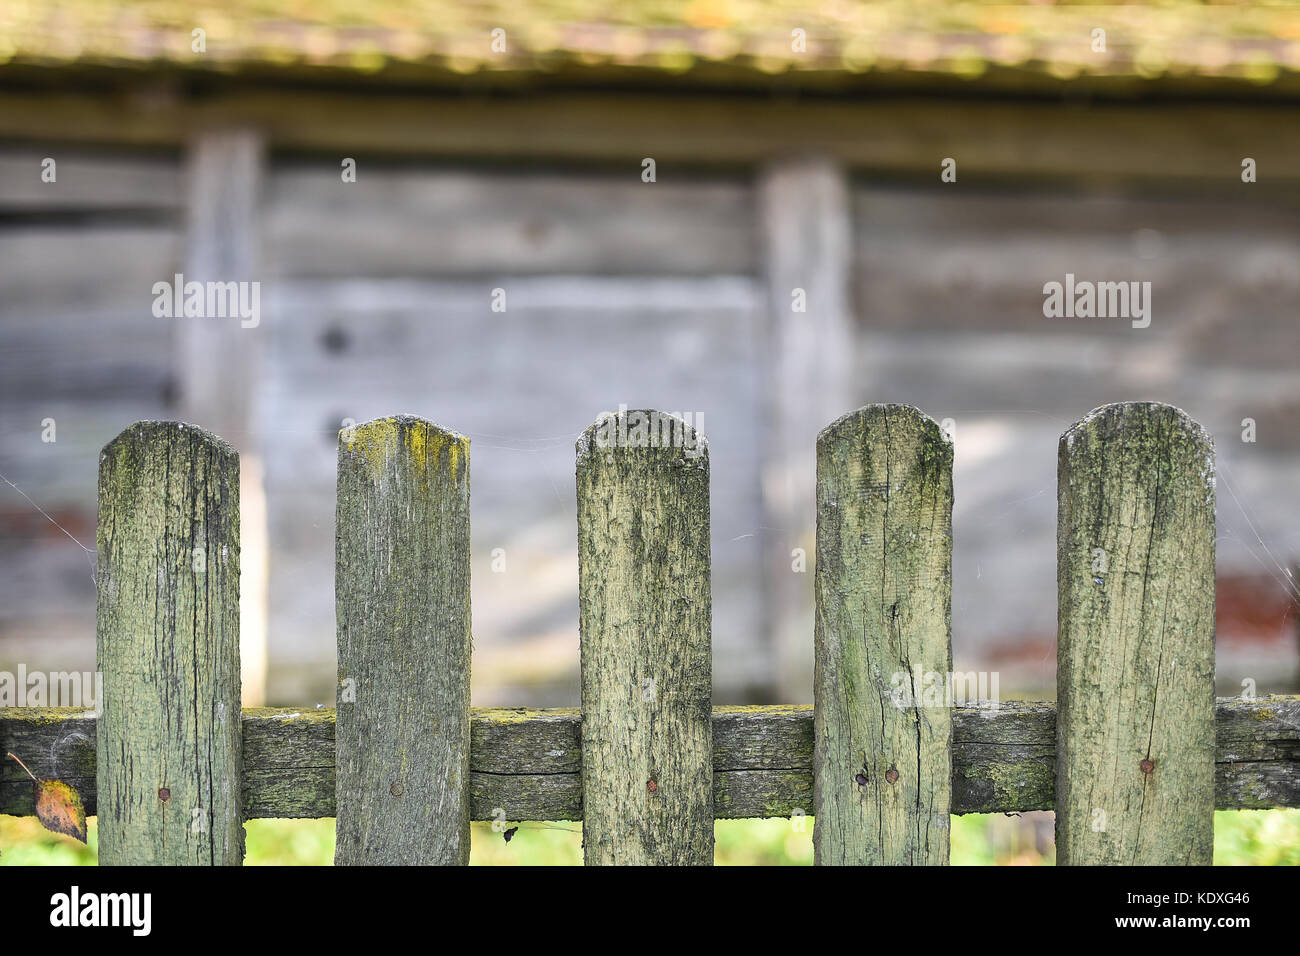 Old wooden fence, wooden wall of barn on background, copy space, life in the village, Western Ukraine - Stock Image